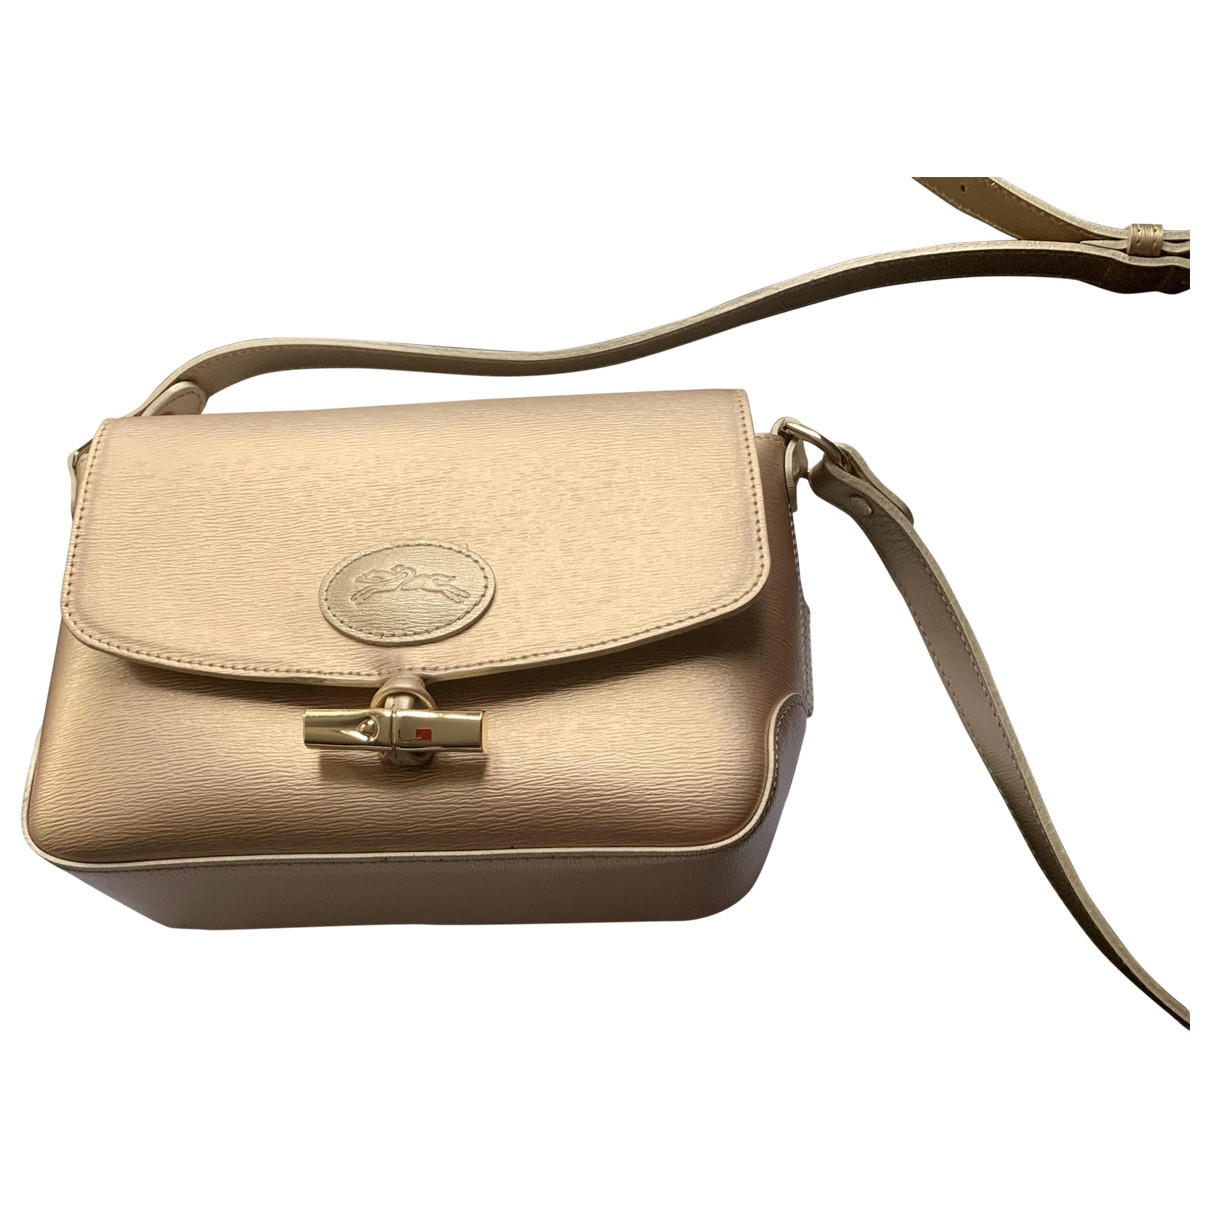 Longchamp \N Gold Leather handbag for Women \N